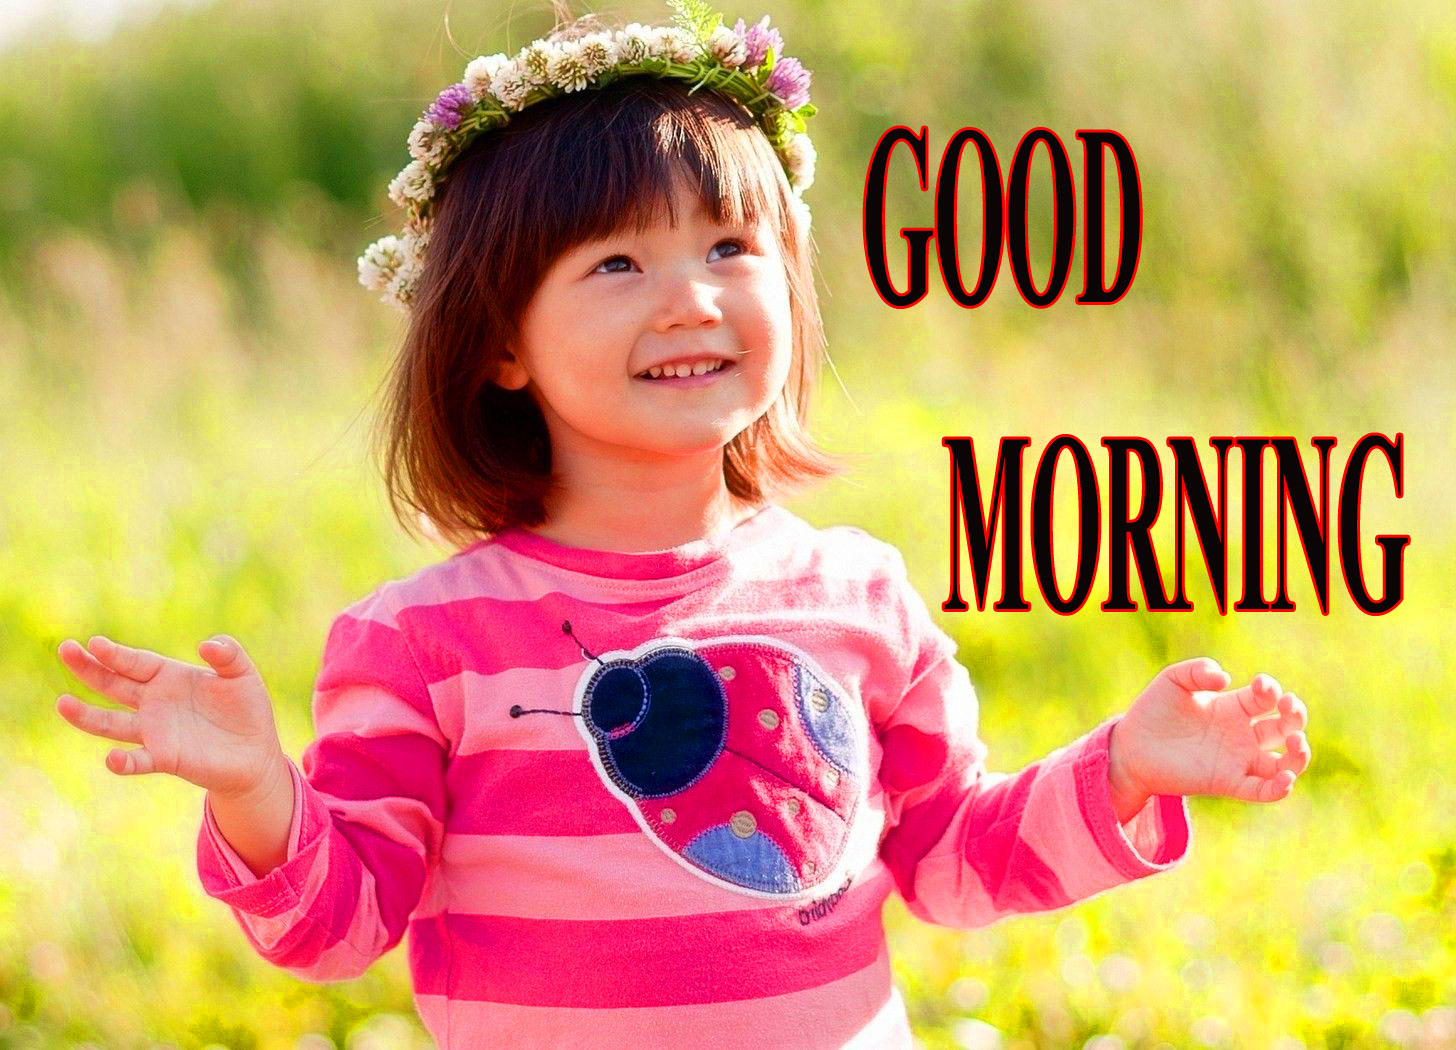 BEAUTIFUL LATEST AMAZING ALL GOOD MORNING IMAGES PICS WALLPAPER DOWNLOAD